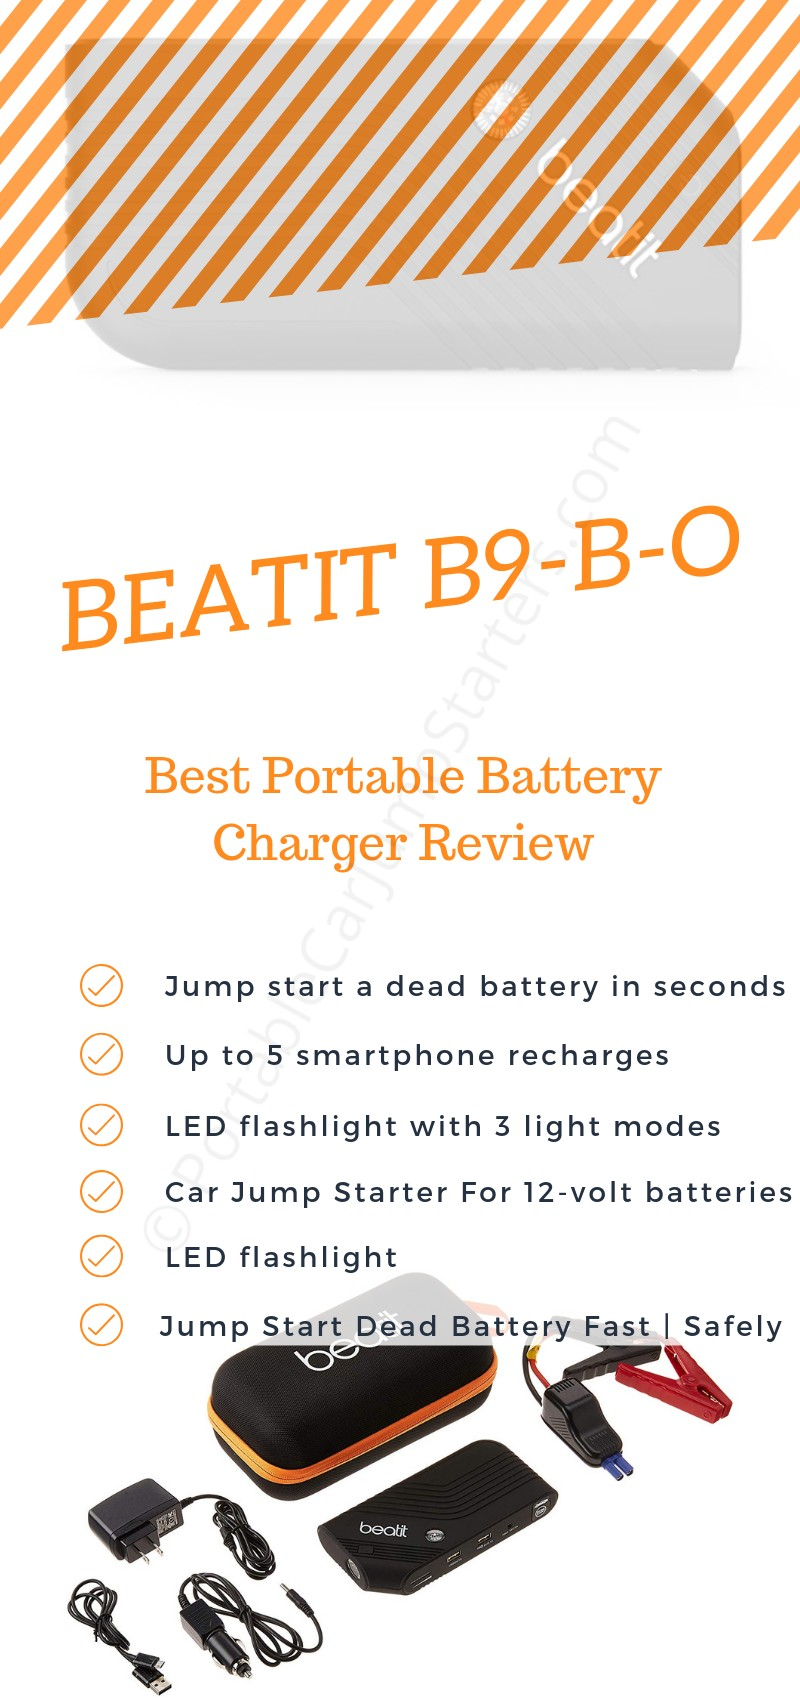 BEATIT B9-B-O Best Portable Battery Charger Review 2019